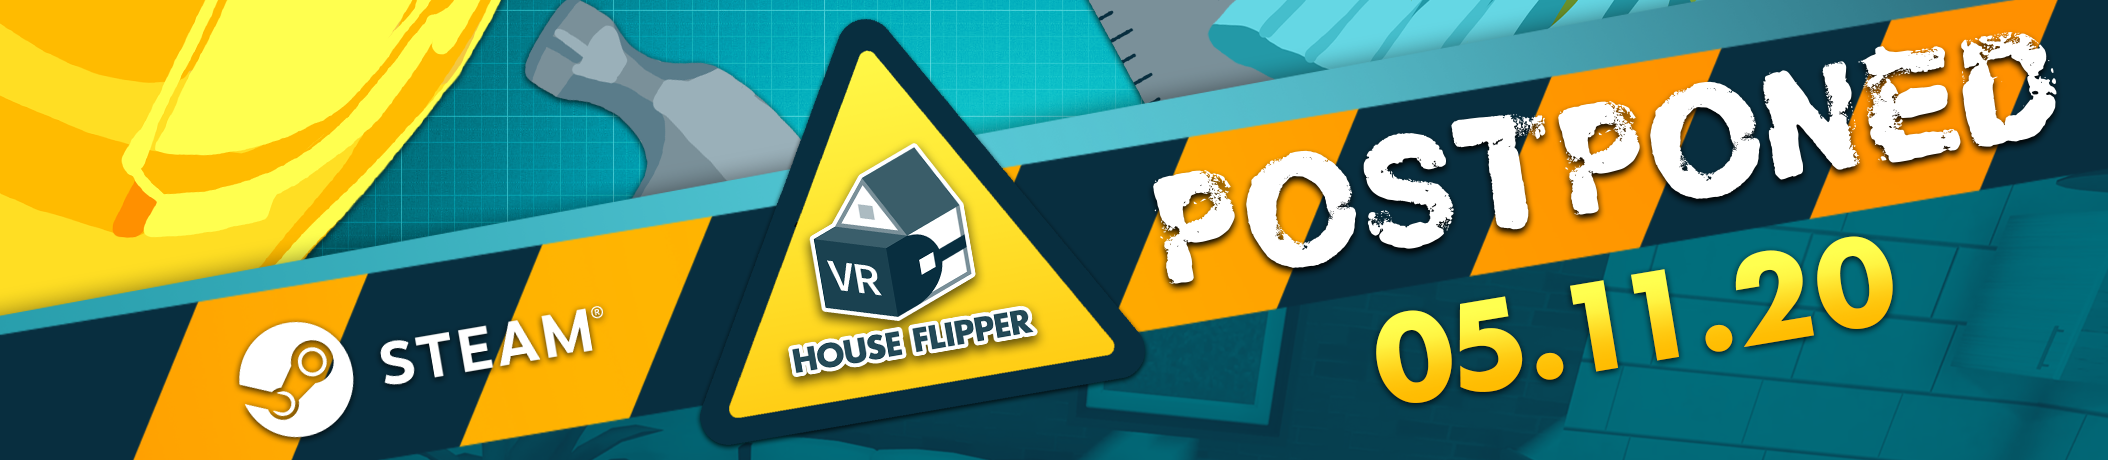 House Flipper VR release postponed! November 5!